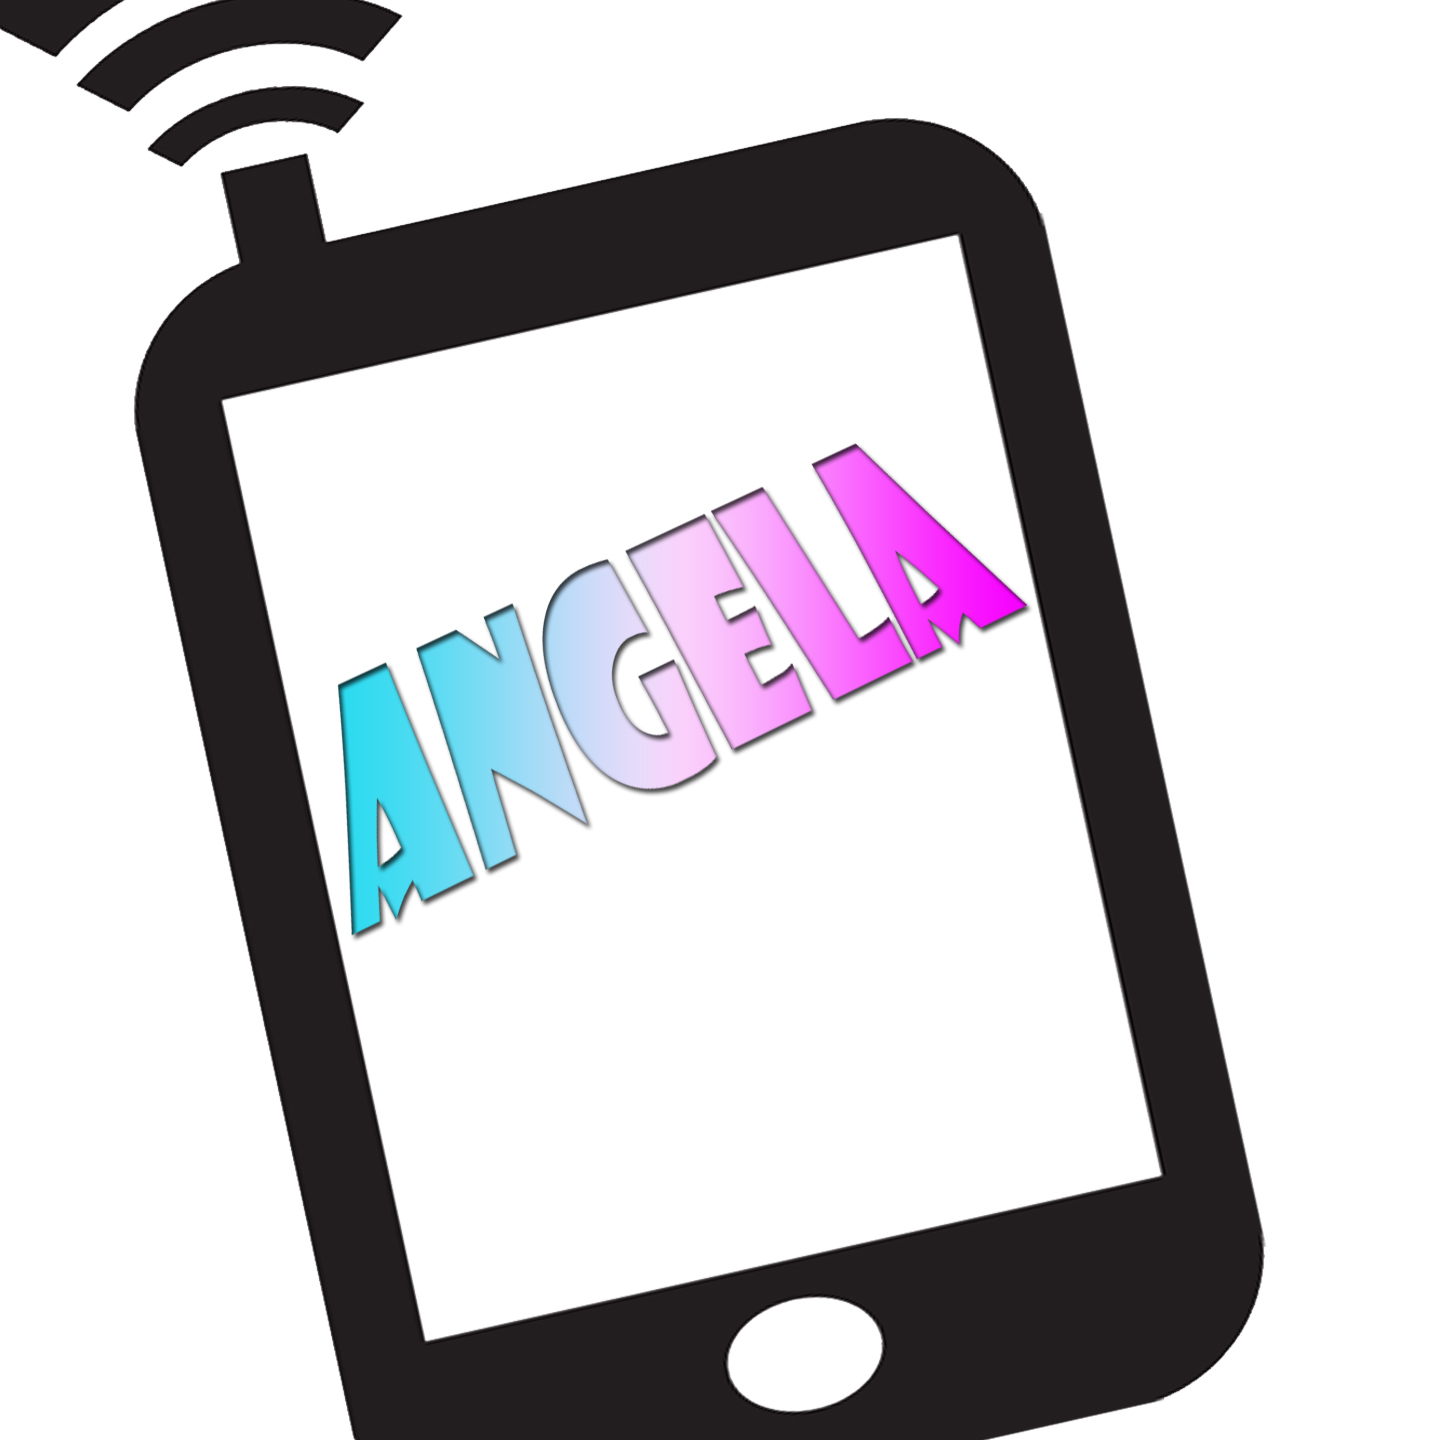 Angela is calling you